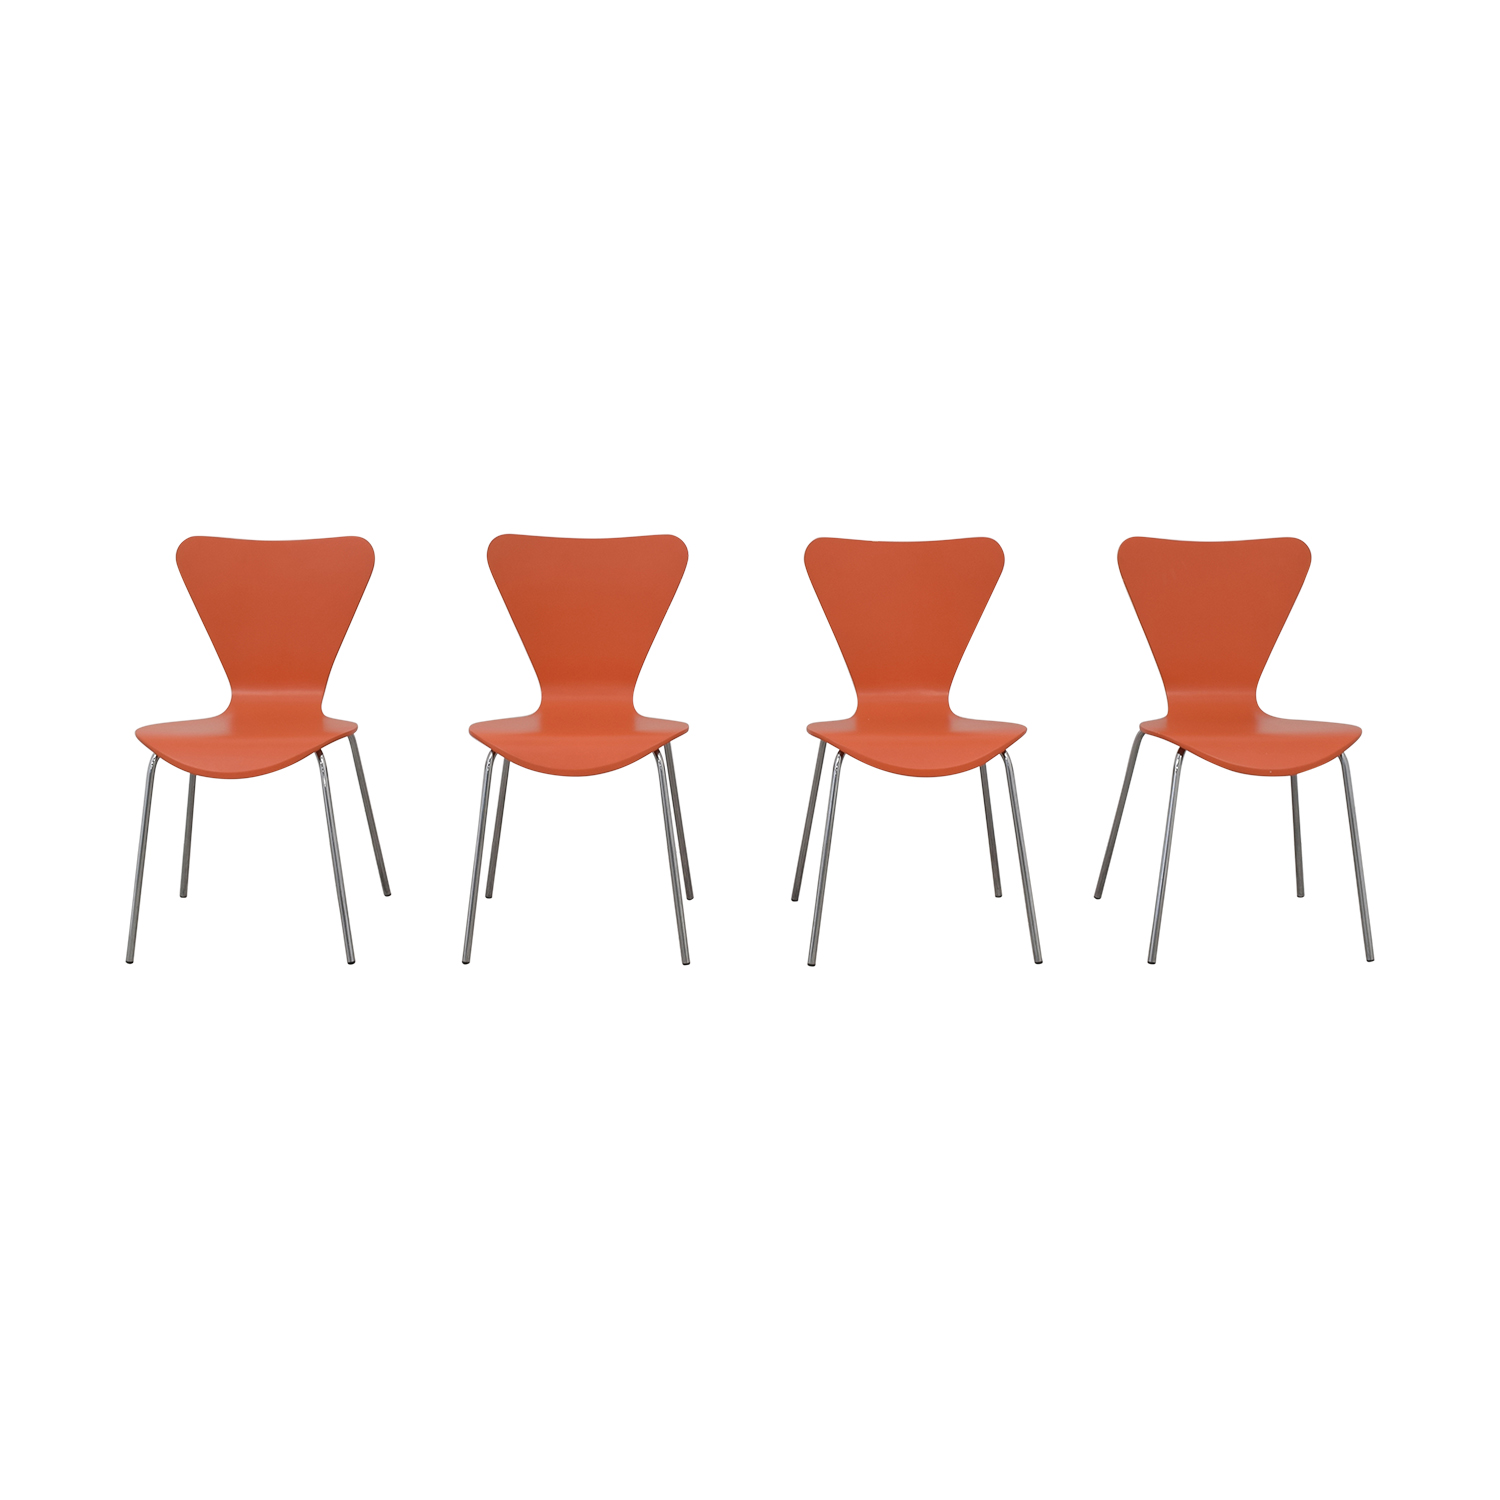 Room & Board Room & Board Orange Chairs on sale